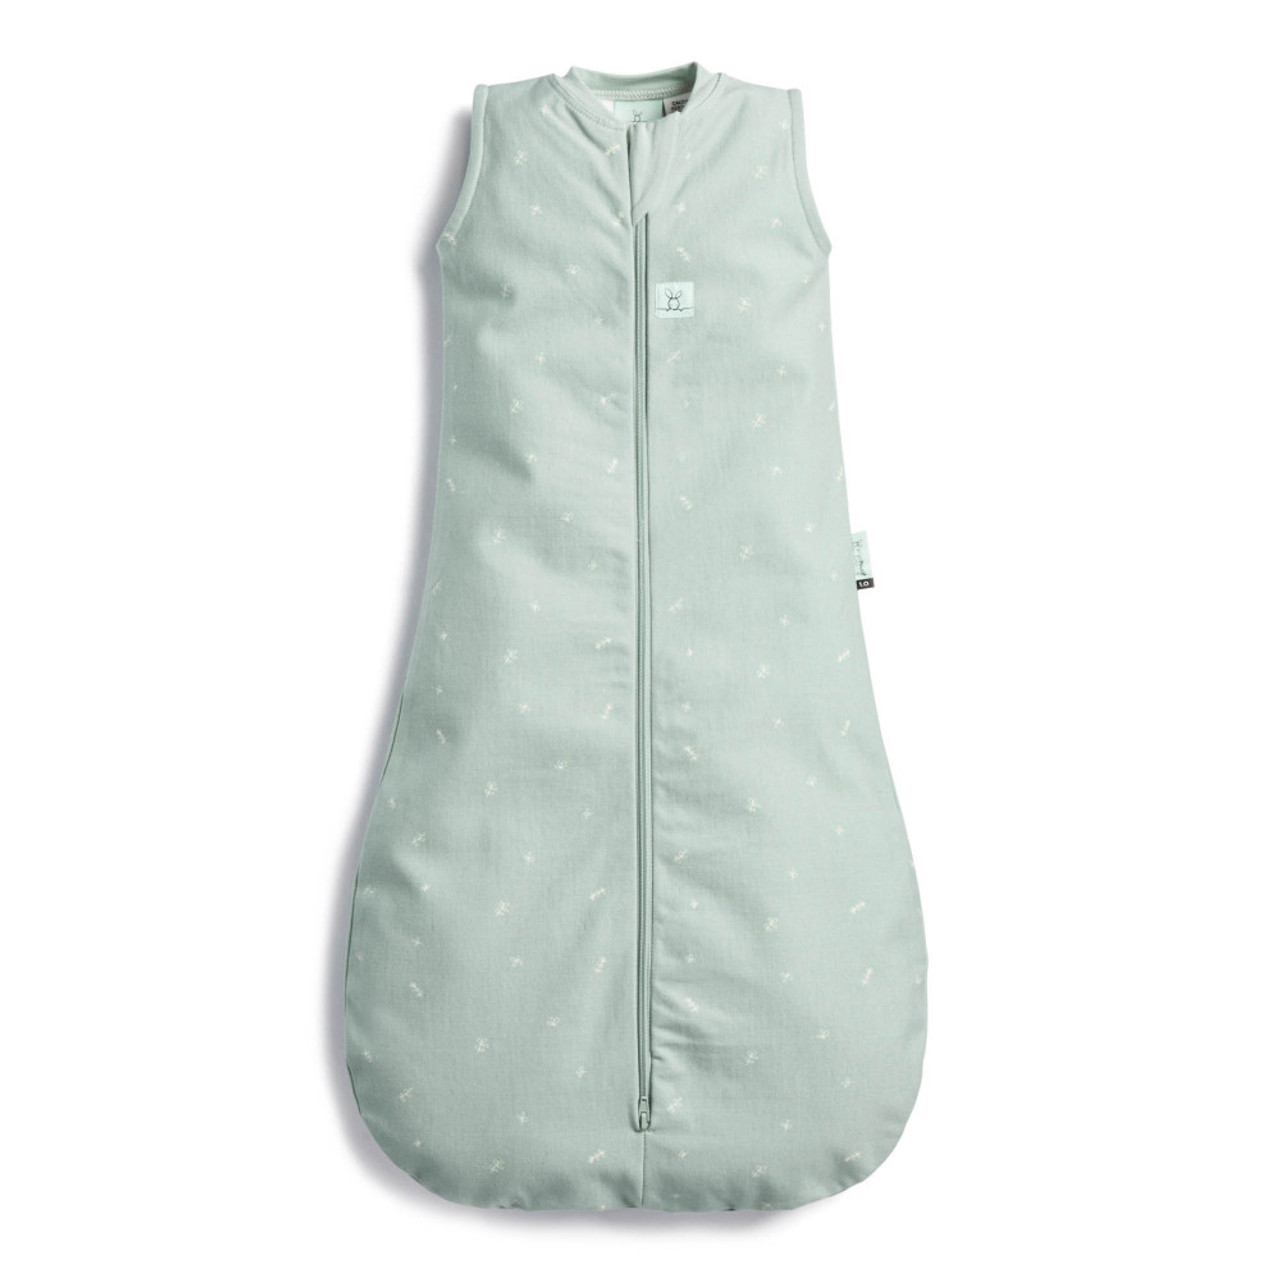 ergoPouch Jersey Sleeping Bag 0.2 TOG Sage 8-24 months at Baby Barn Discounts